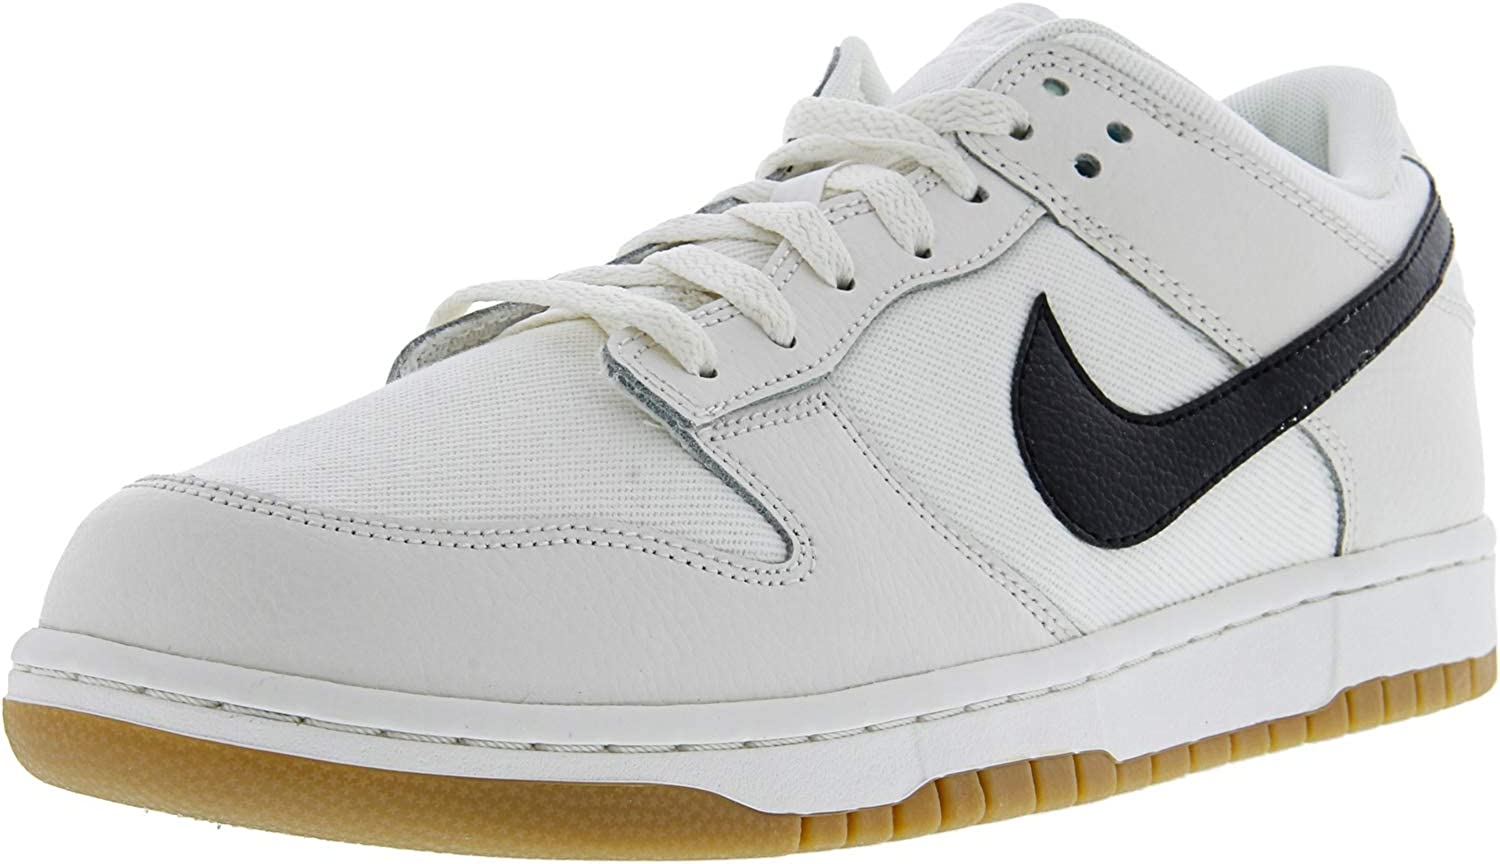 Nike Men's Dunk Low Gymnastics shoes